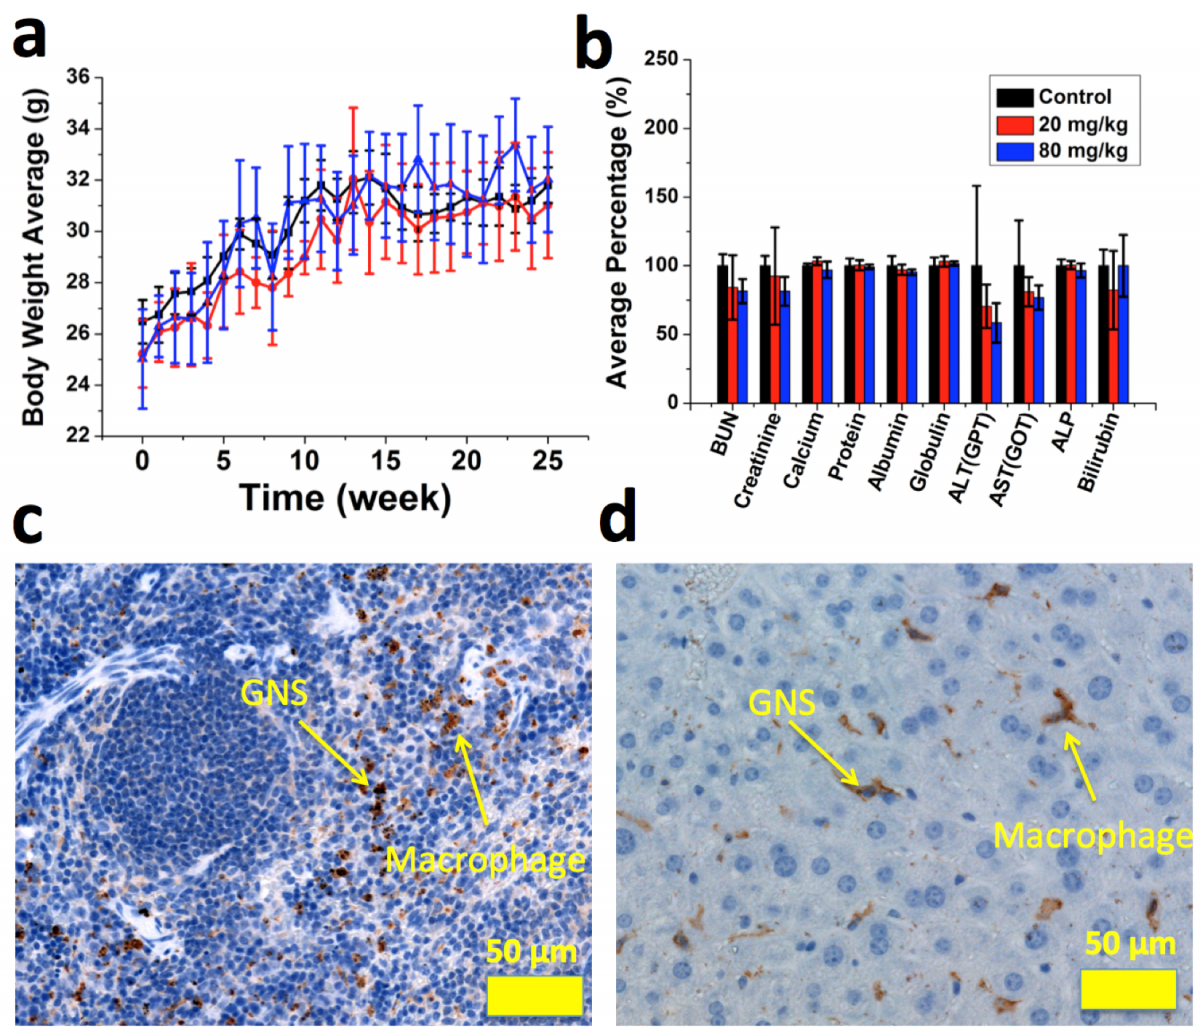 Figure 3: a) longitudinal average mice bodyweights for control (black) and gold nanostar injection groups (20 mg/kg (red) or 80 mg/kg (blue)). b) blood chemistry test results. C) & D) F4/80 IHC staining for spleen (c) and liver (d) to show macrophages, without a significant inflammatory response seen